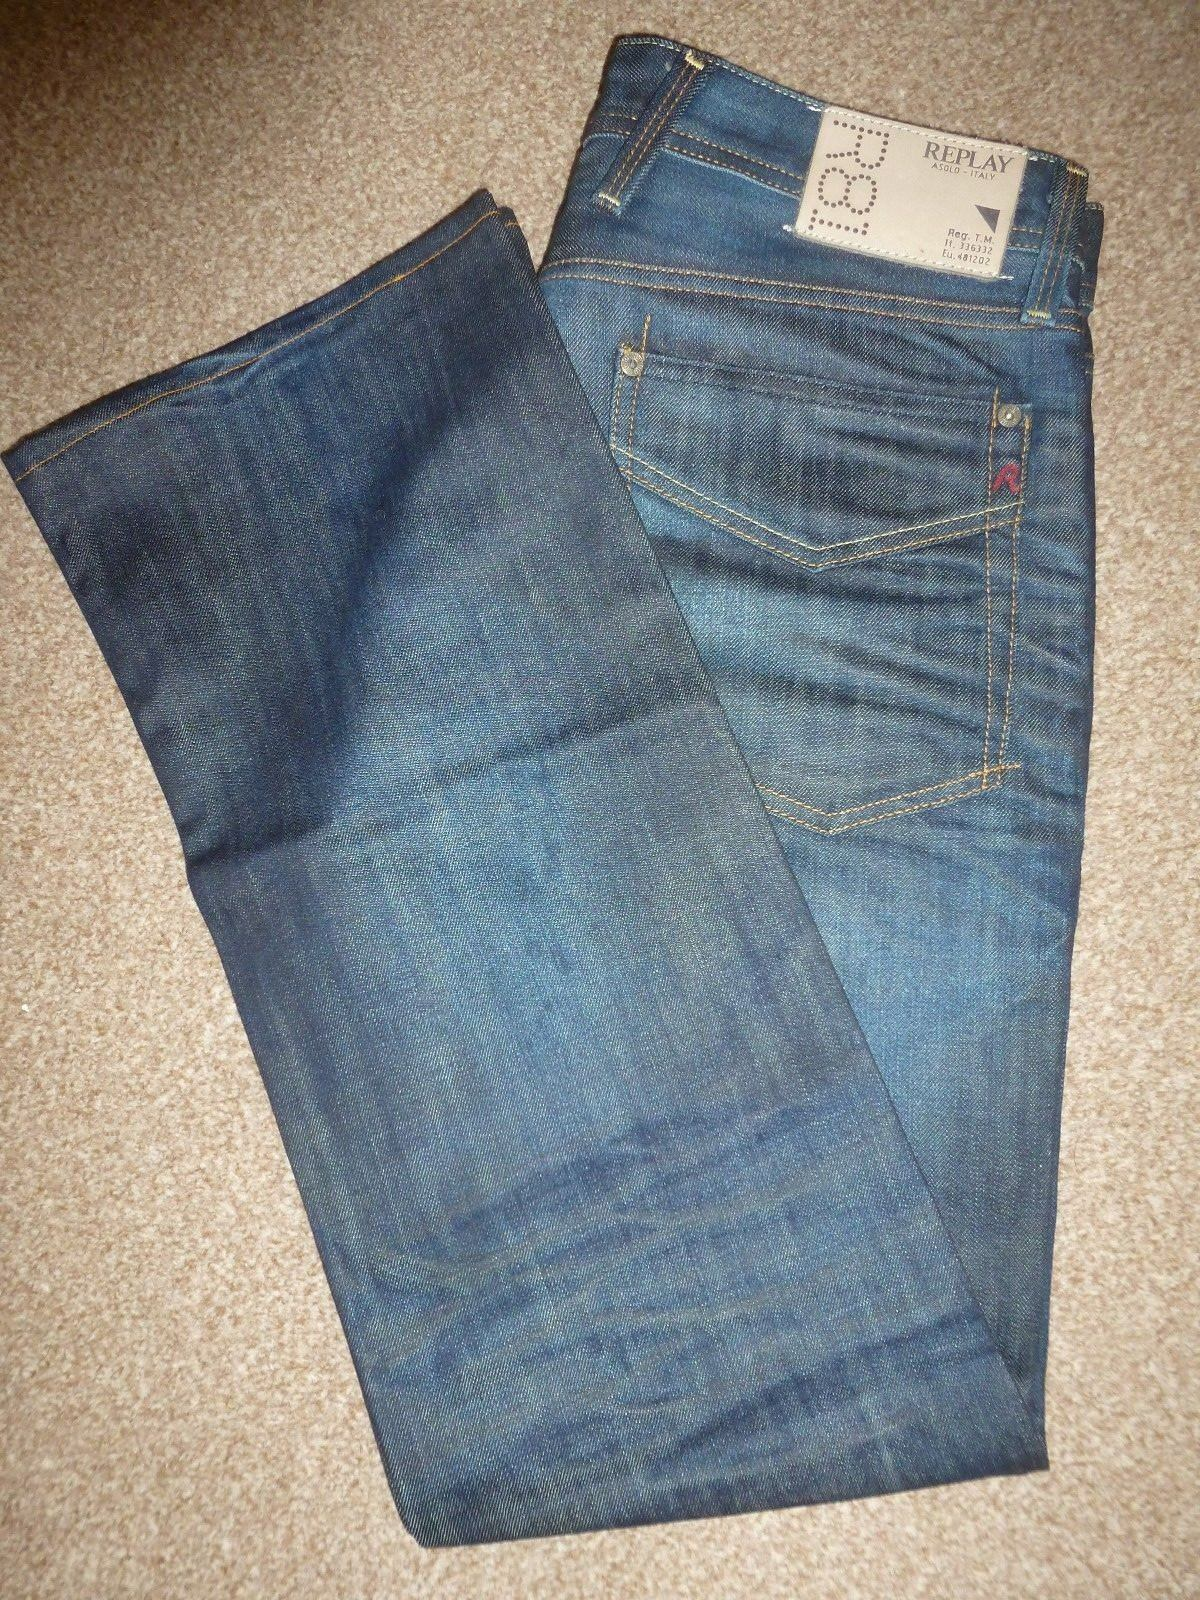 MENS REPLAY SYRRET ITALY DARK blueE CLASSIC BOOTCUT DENIM JEANS WAIST 32 LEG 32